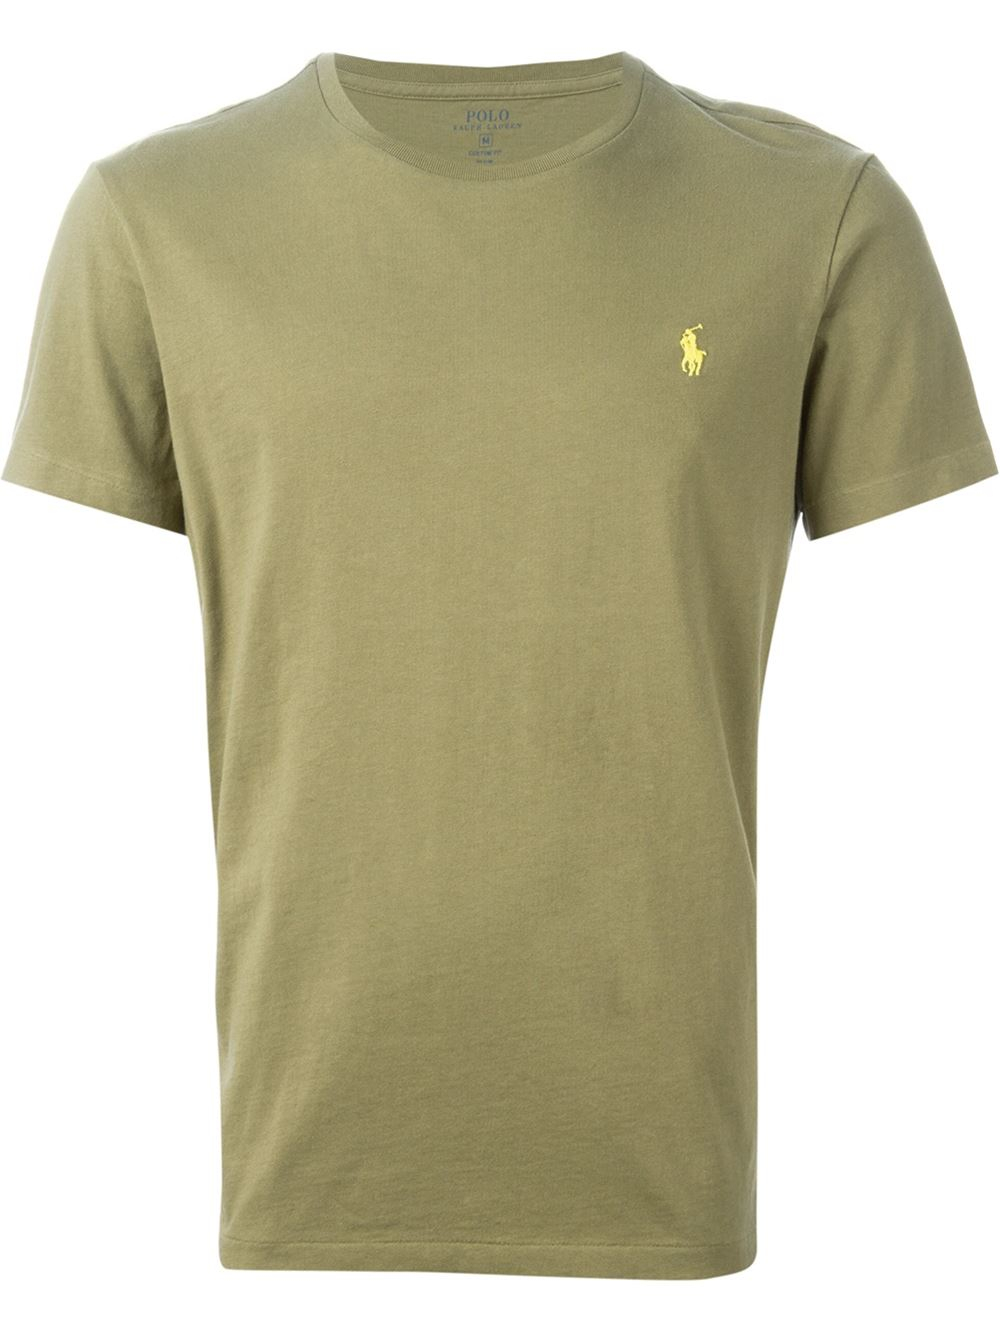 Polo ralph lauren embroidered logo t shirt in green for men lyst for Ralph lauren logo shirt